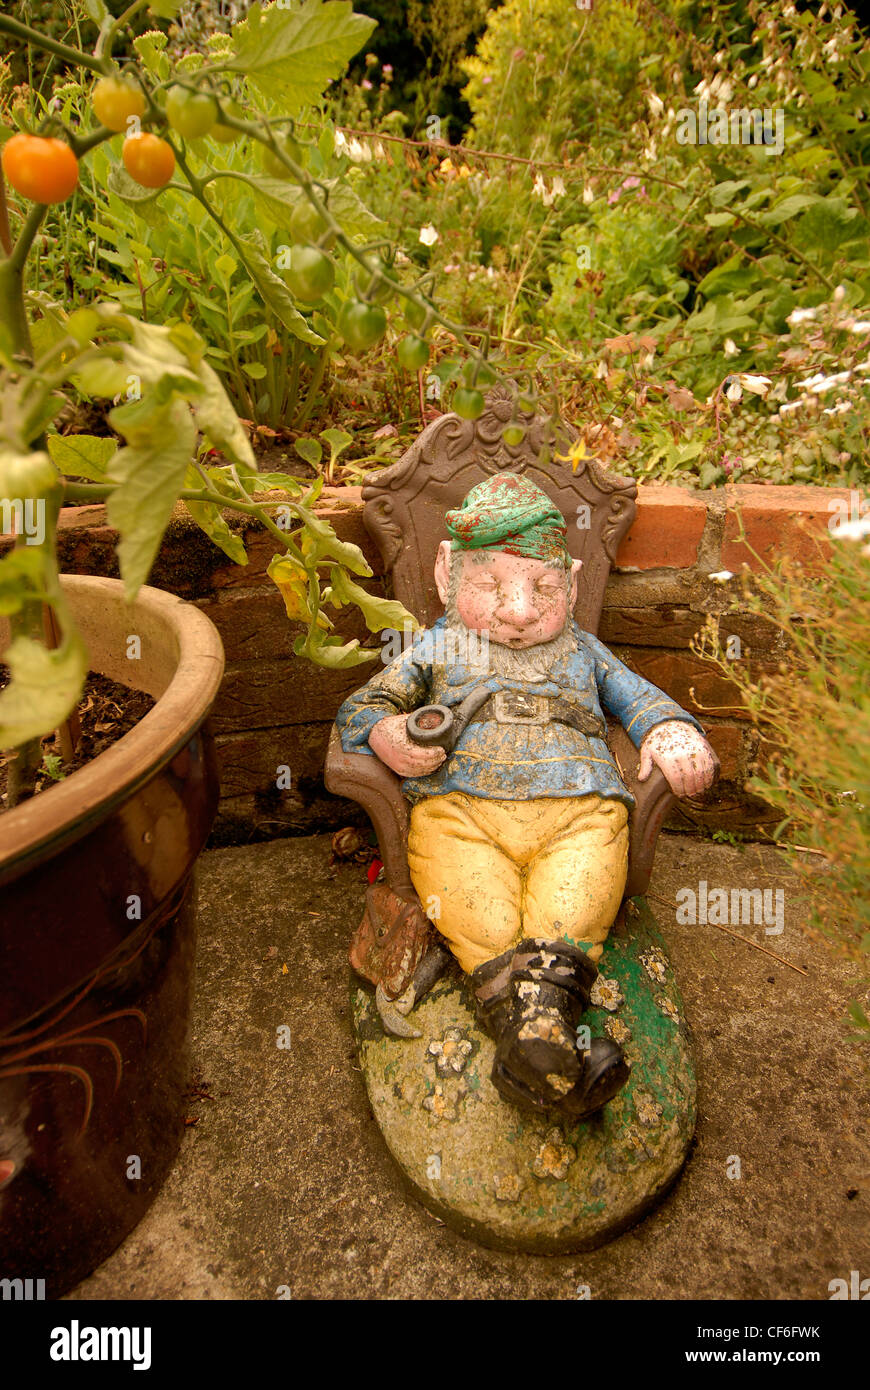 A dozing garden gnome, next to a garden pot and in the shade of a ...